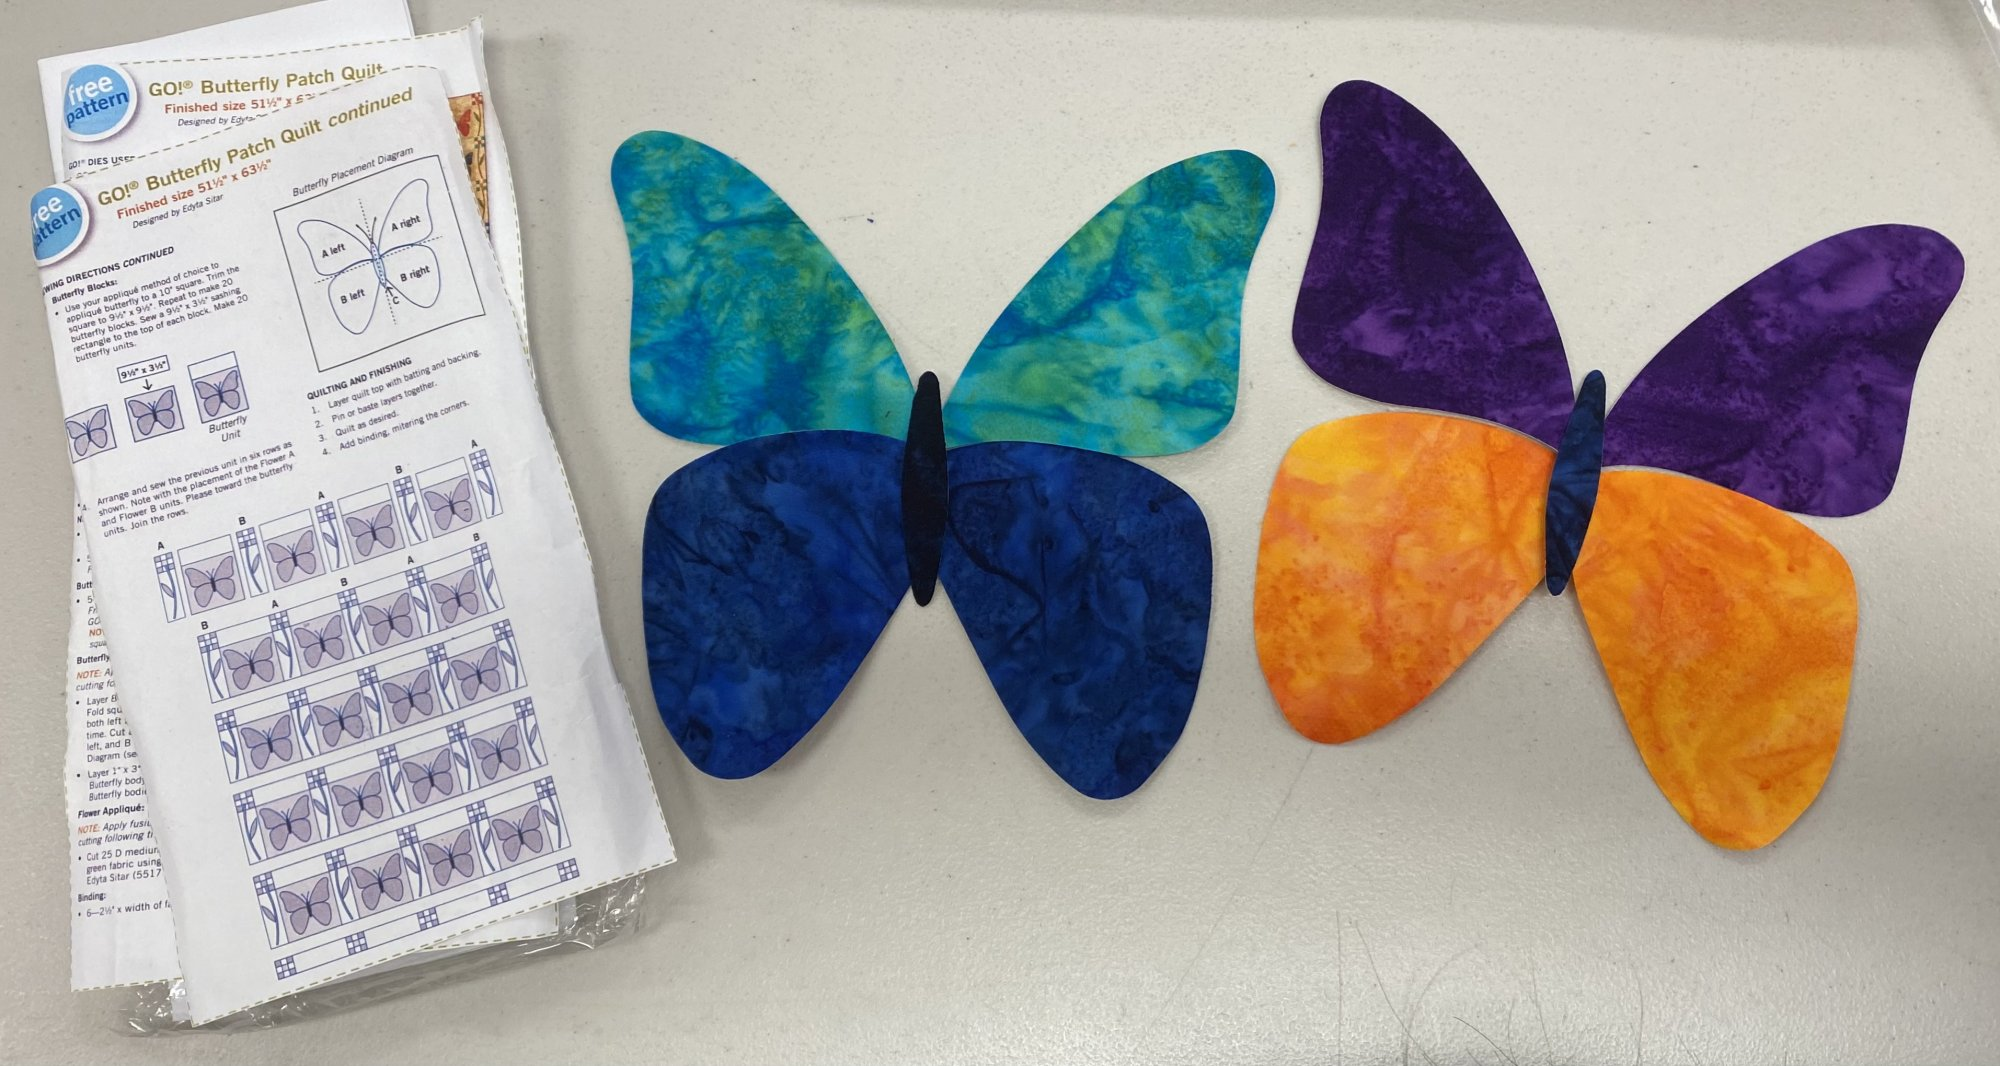 KIT Butterfly Accuquilt 'Go'